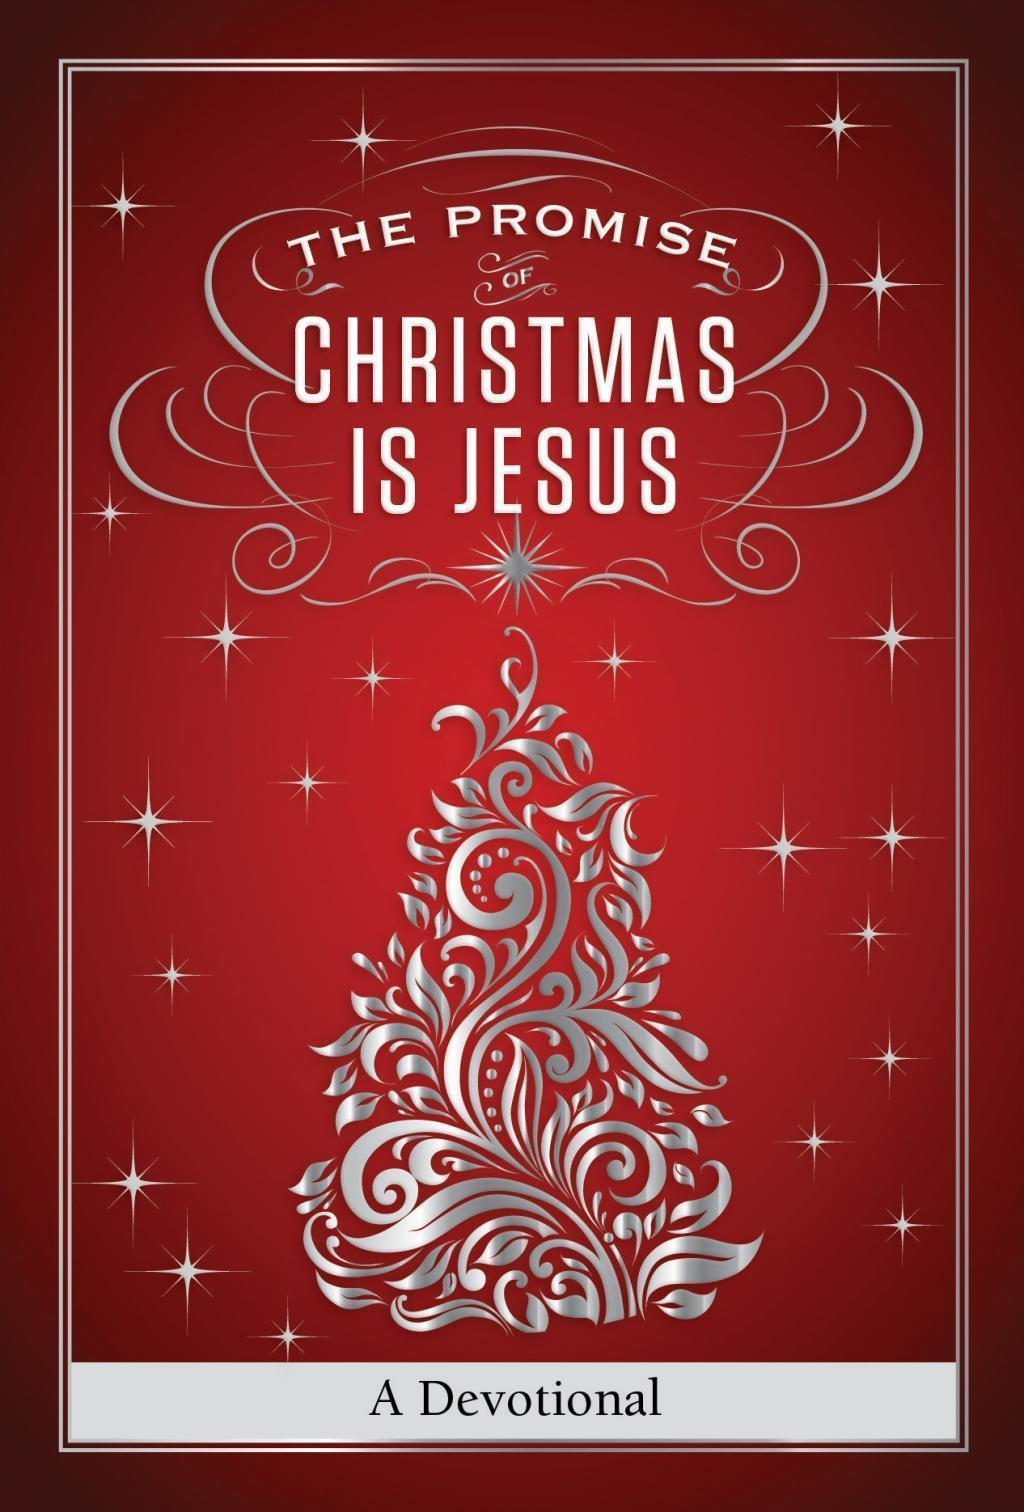 The Promise of Christmas is Jesus